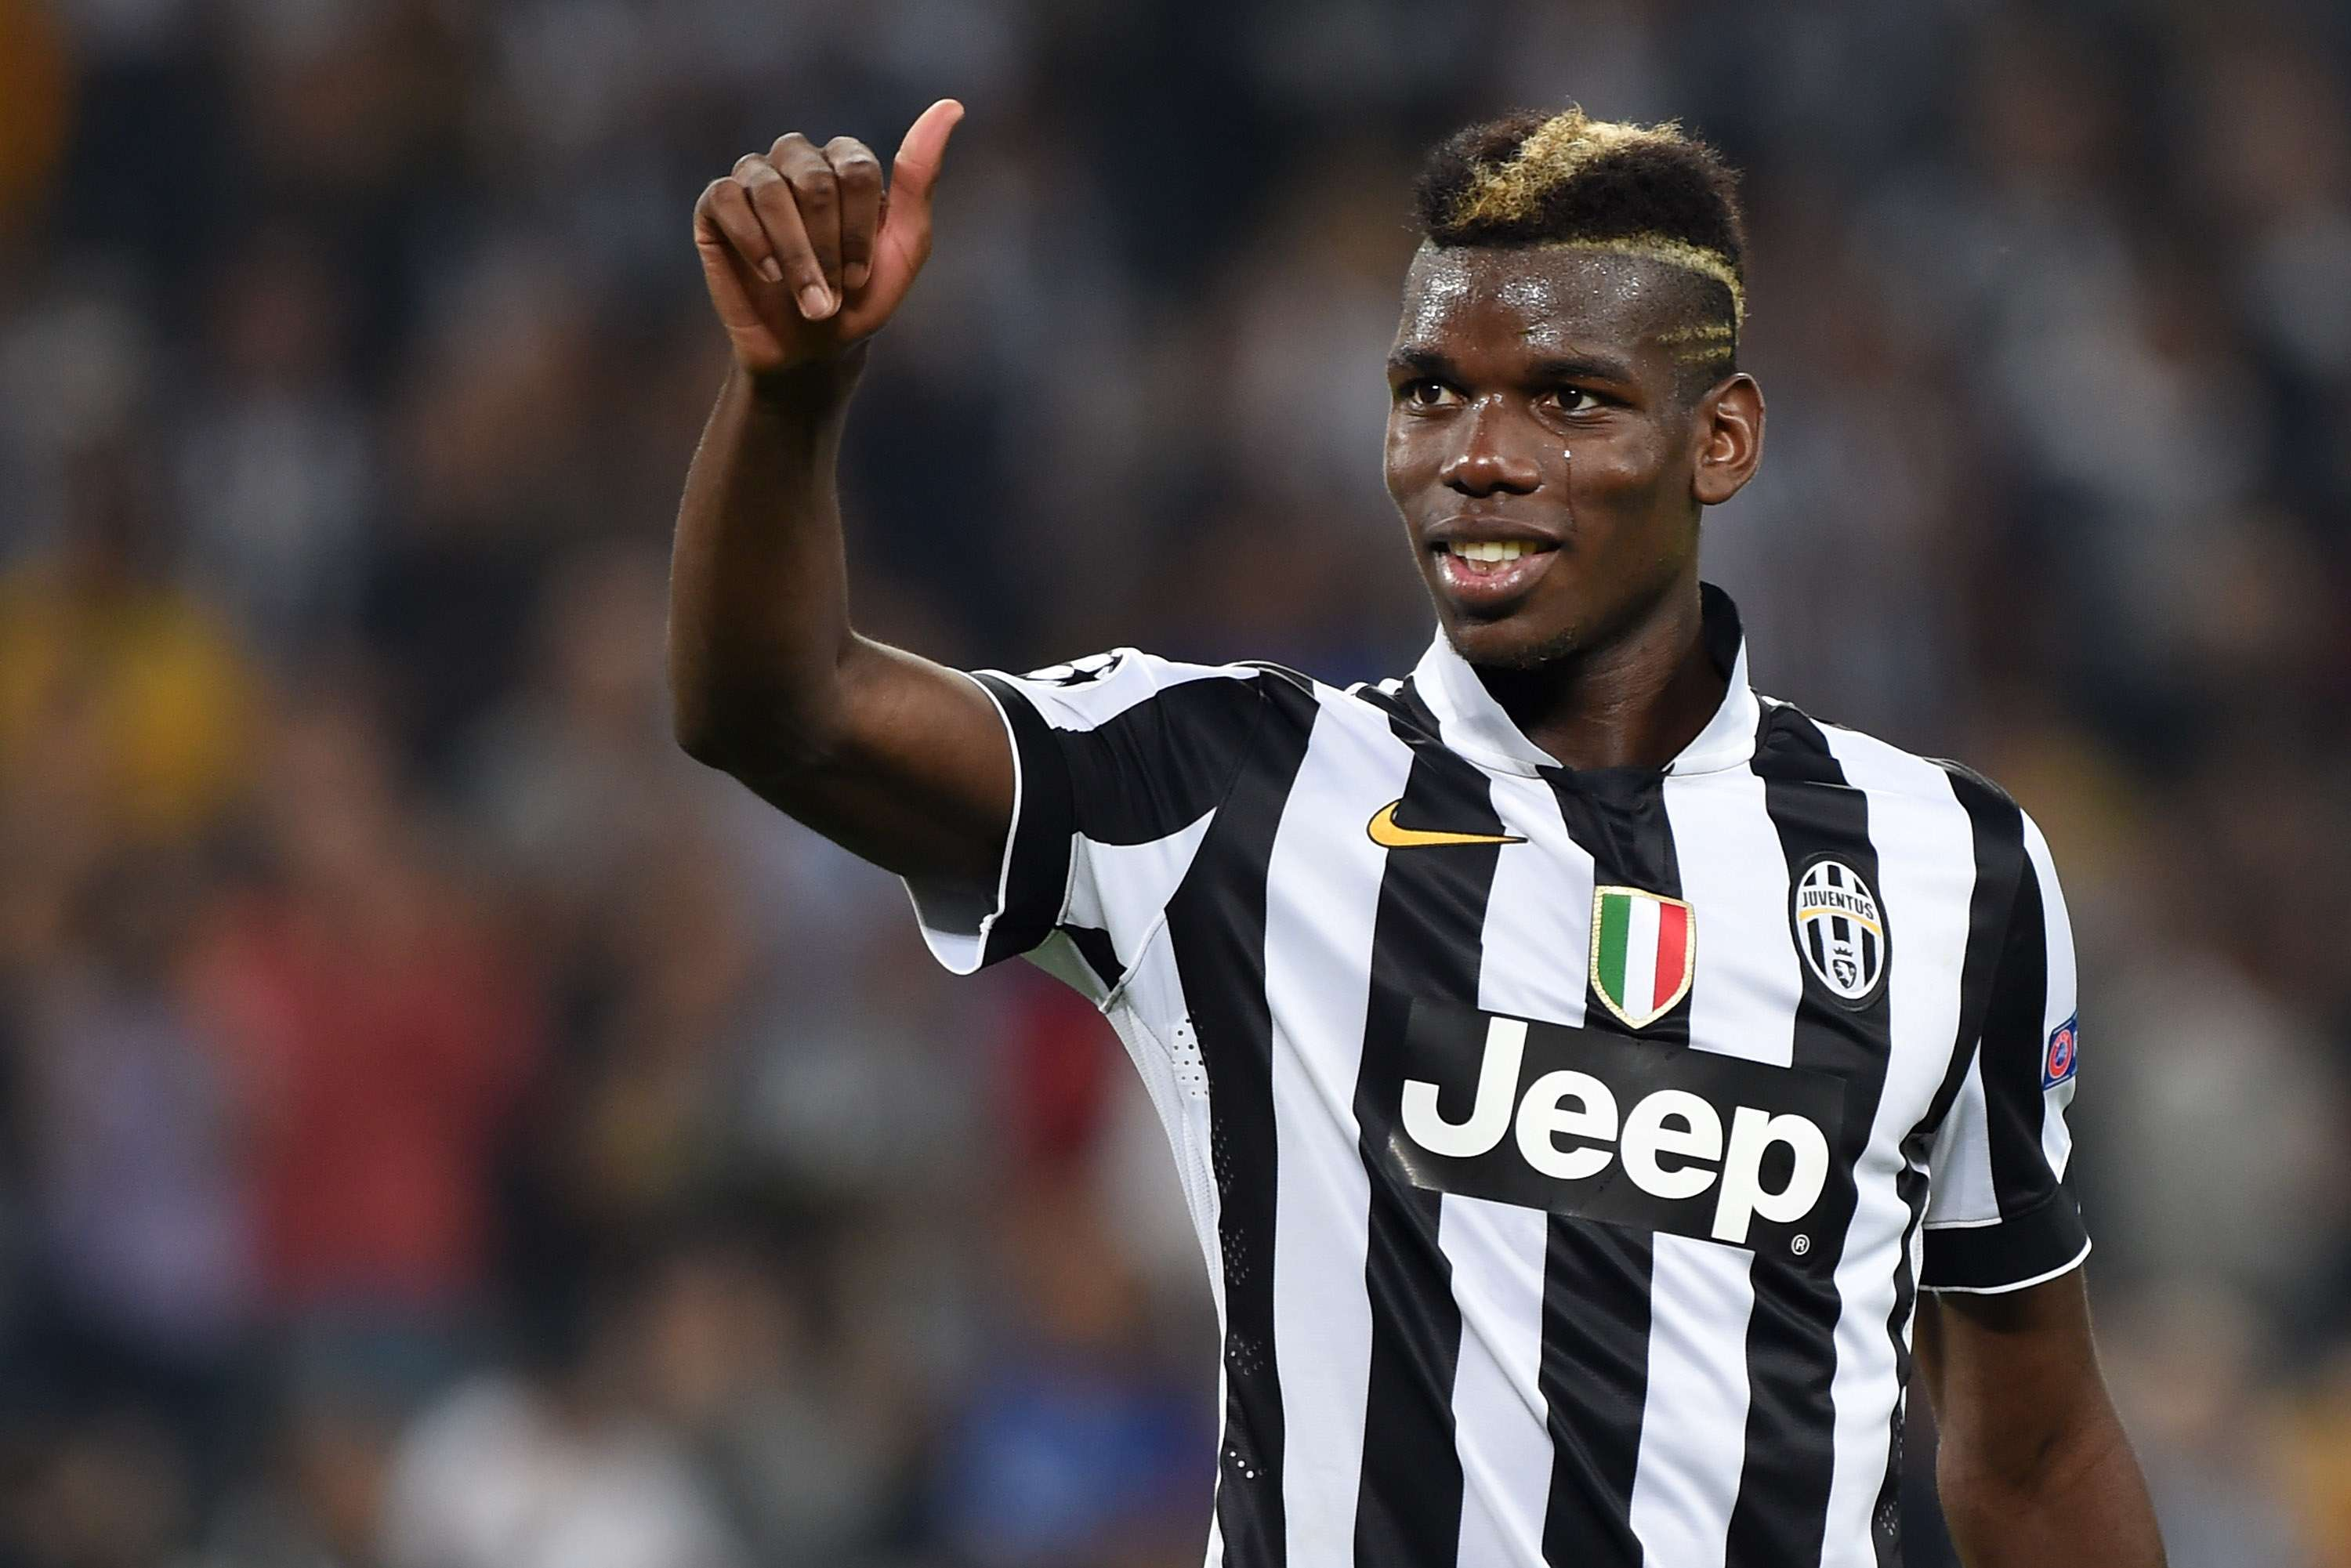 Pogba estará con la Juve hasta el 2019. Foto: Getty Images